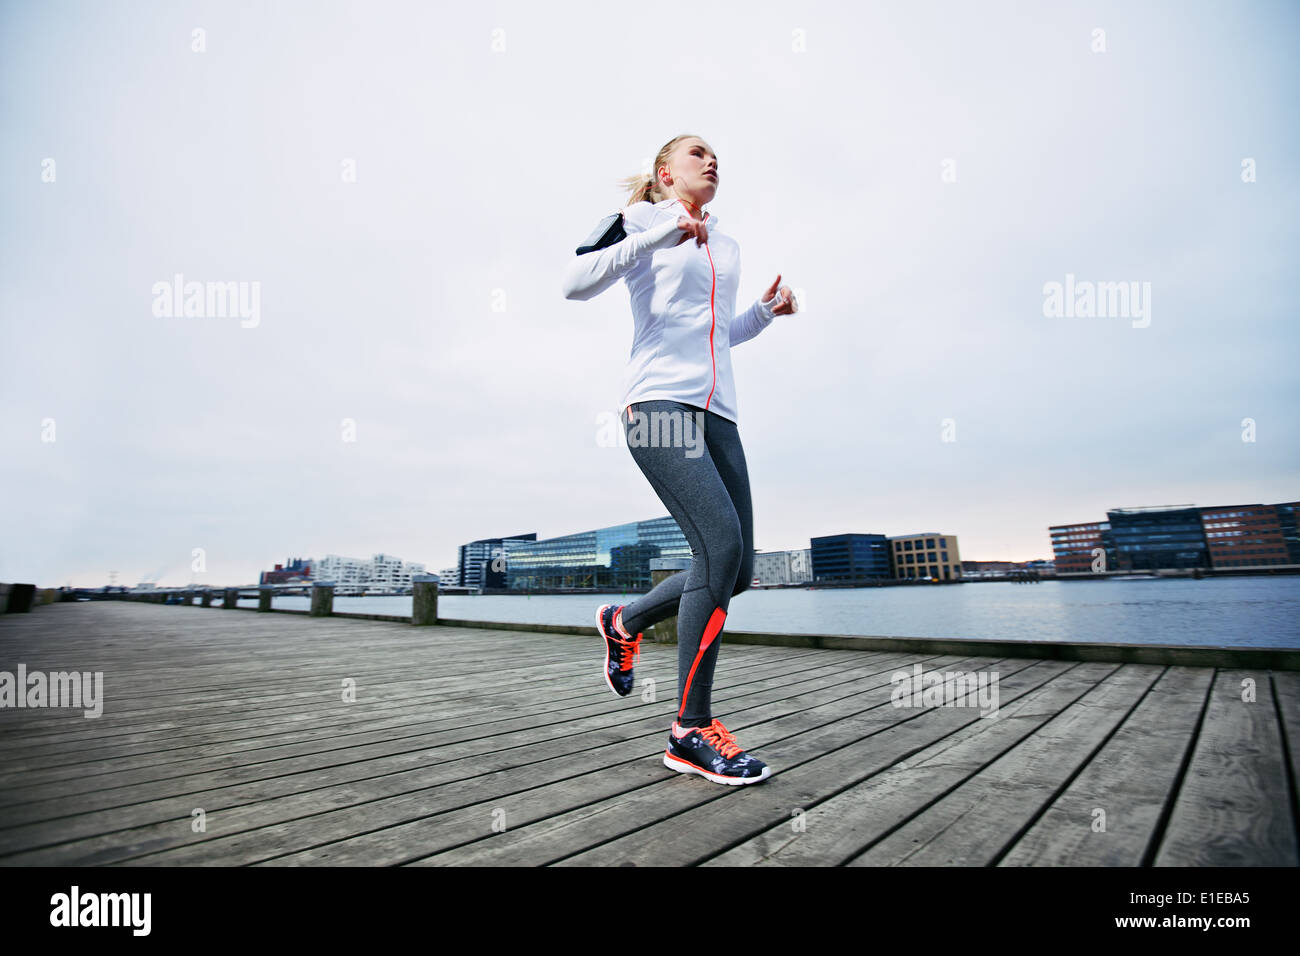 Low angle view of female athlete running along waterfront. Young woman jogging on boardwalk by the river. - Stock Image